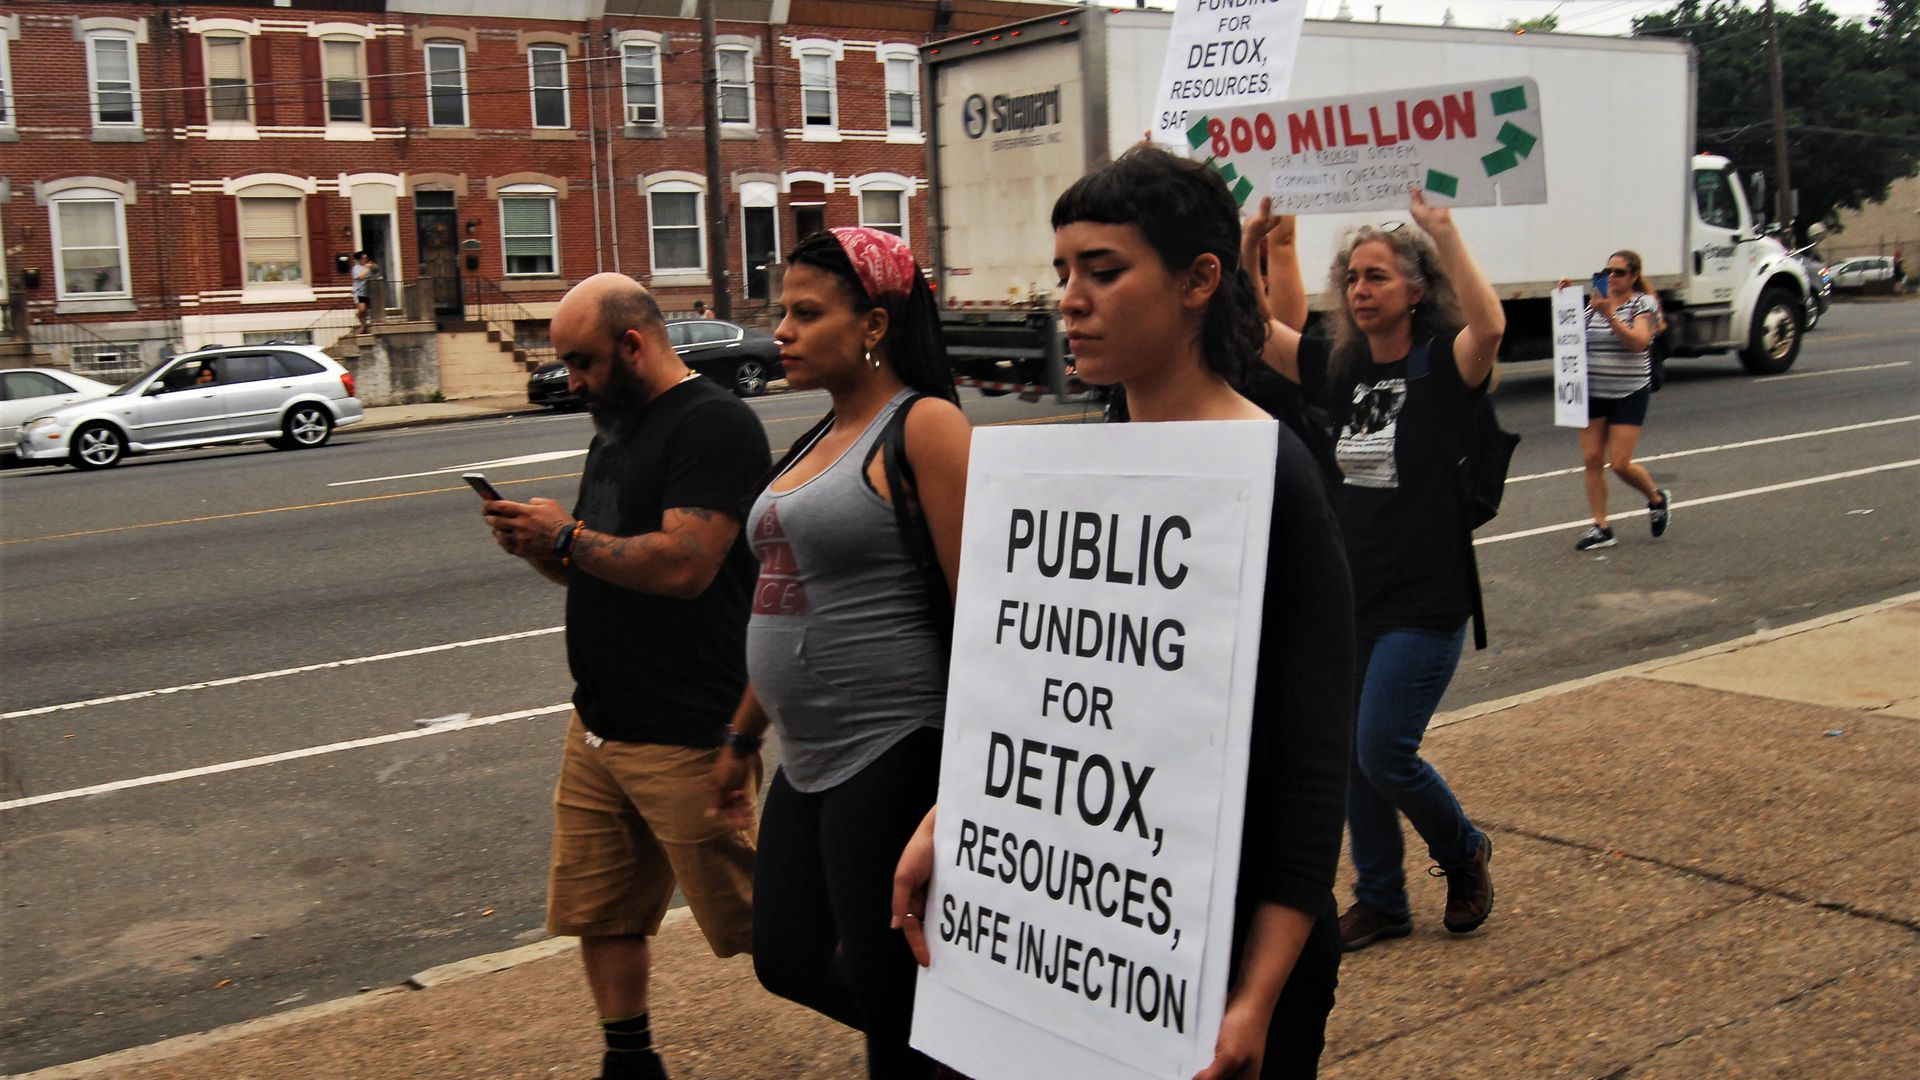 Advocates, activists and homeless folks protest through the streets of Kensington to demand adequate shelter and treatment beds